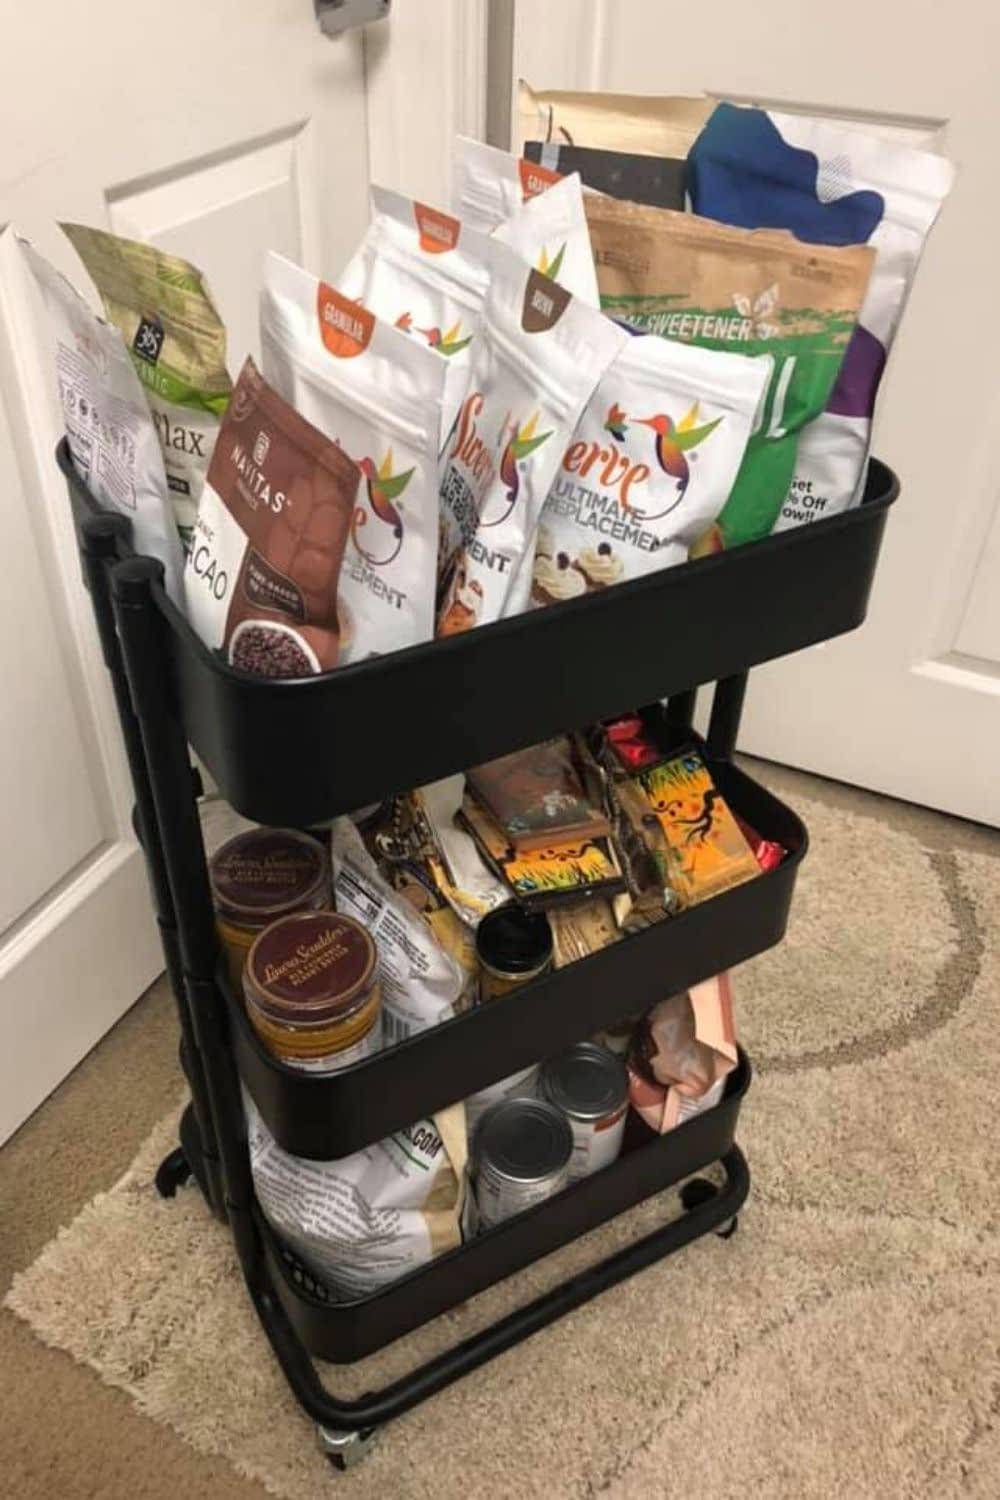 This Keto Cart is perfet for all of my Keto Recipe ingredients. Everytime I'm ready to bake, I just pull out the cart and have everything I need. I stock it seasonally and as needed.